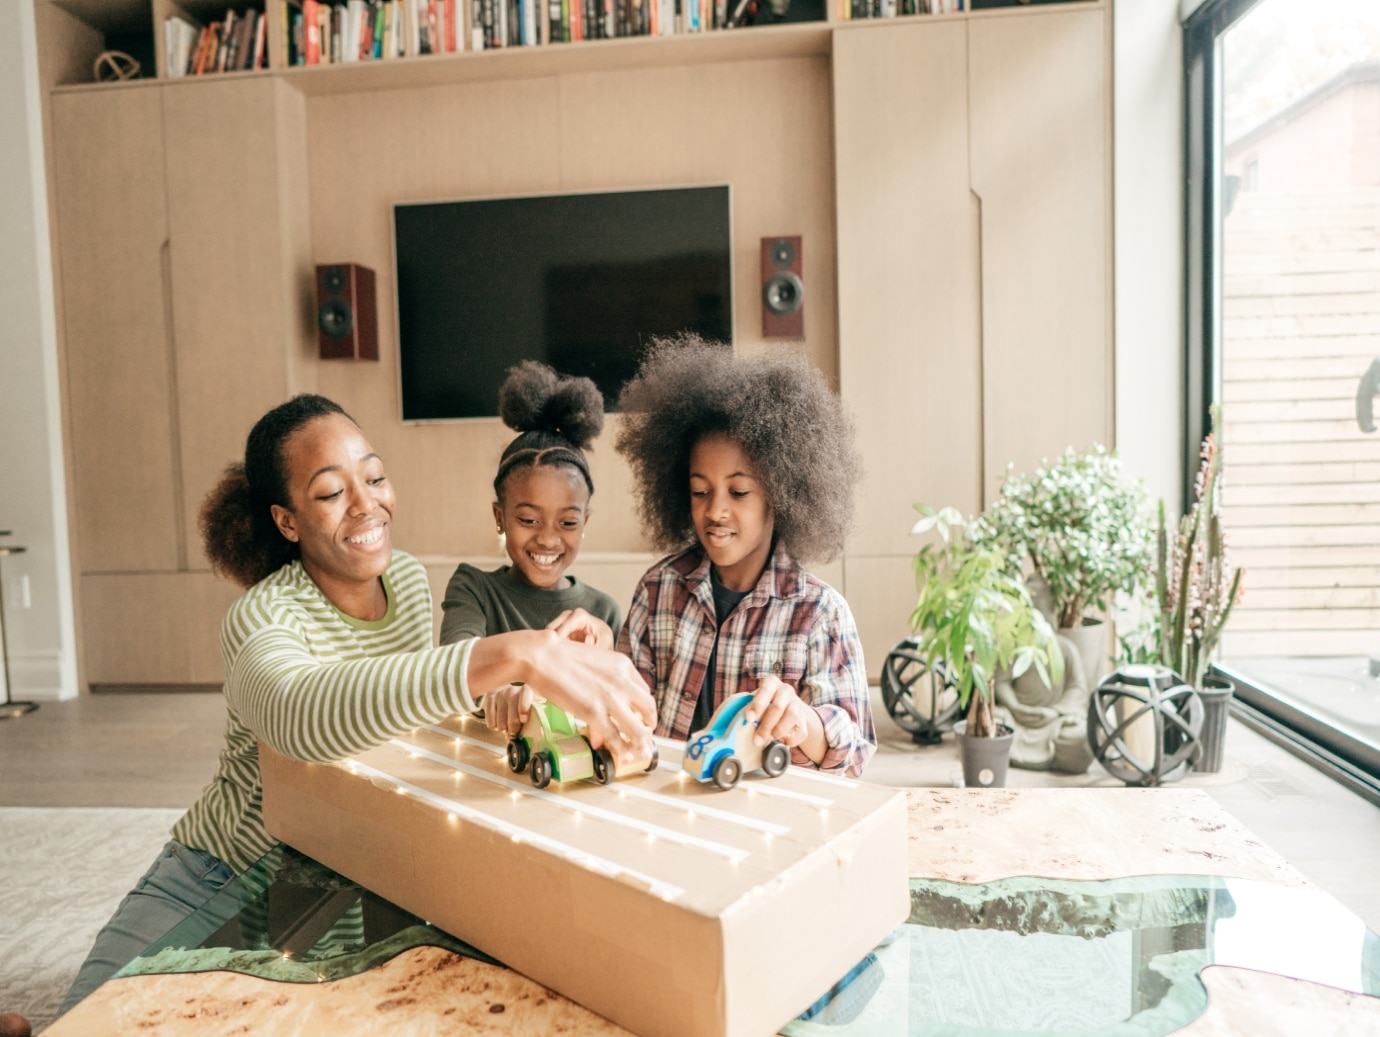 Home uses a YORK Packaged Unit to keep family comfortable while mother plays with her two daughters in the living room.